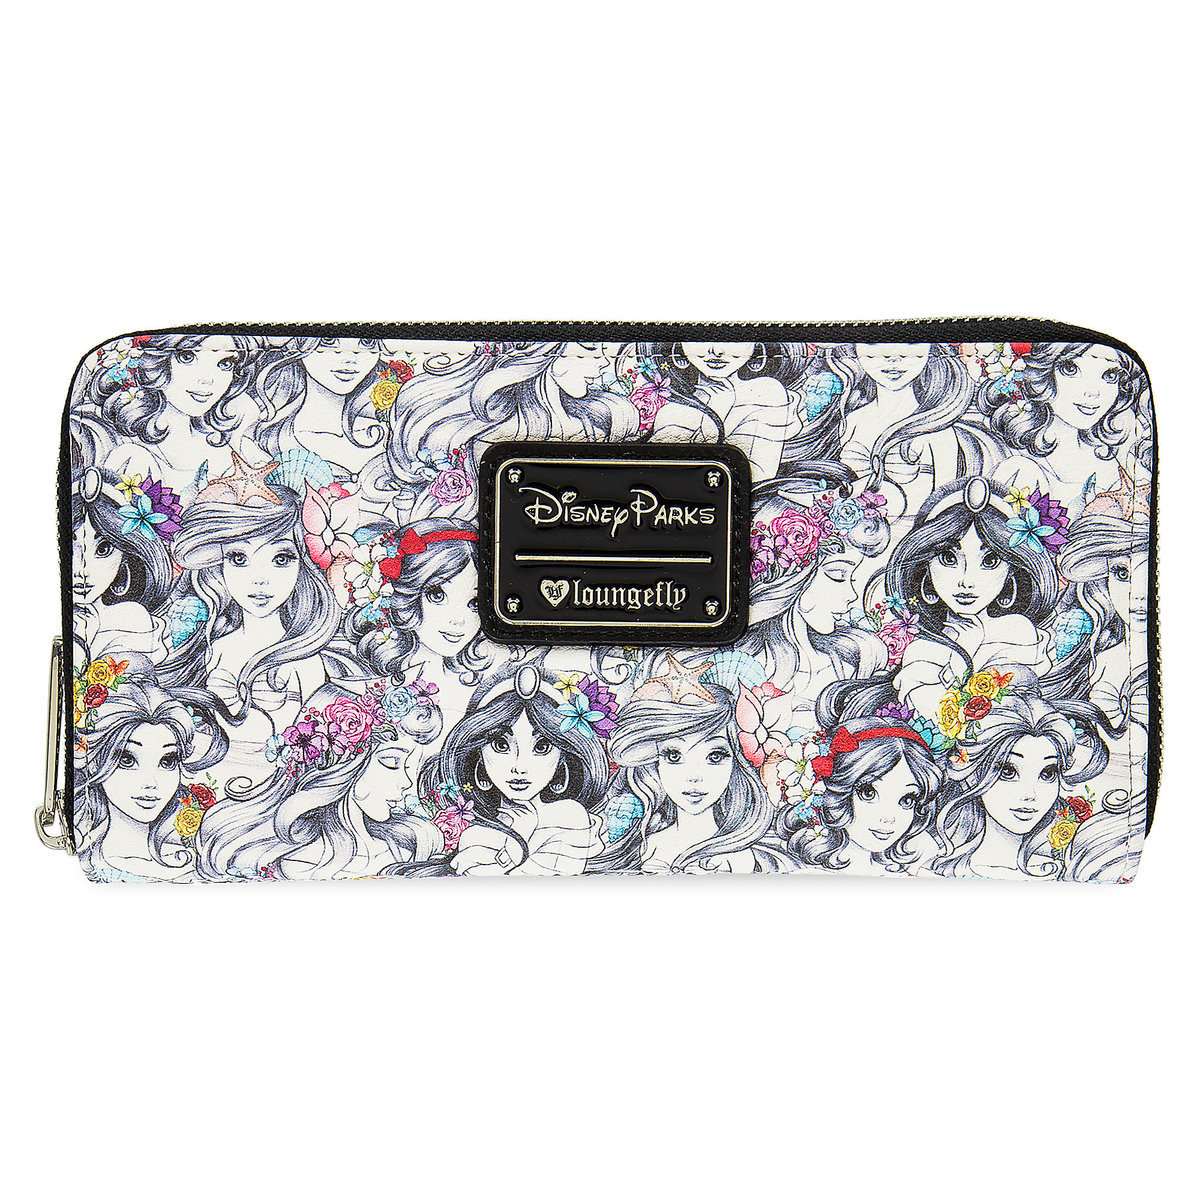 7cce3a68378 Add to My Lists. Disney Parks Wallet - Disney Sketch Princesses by Loungefly